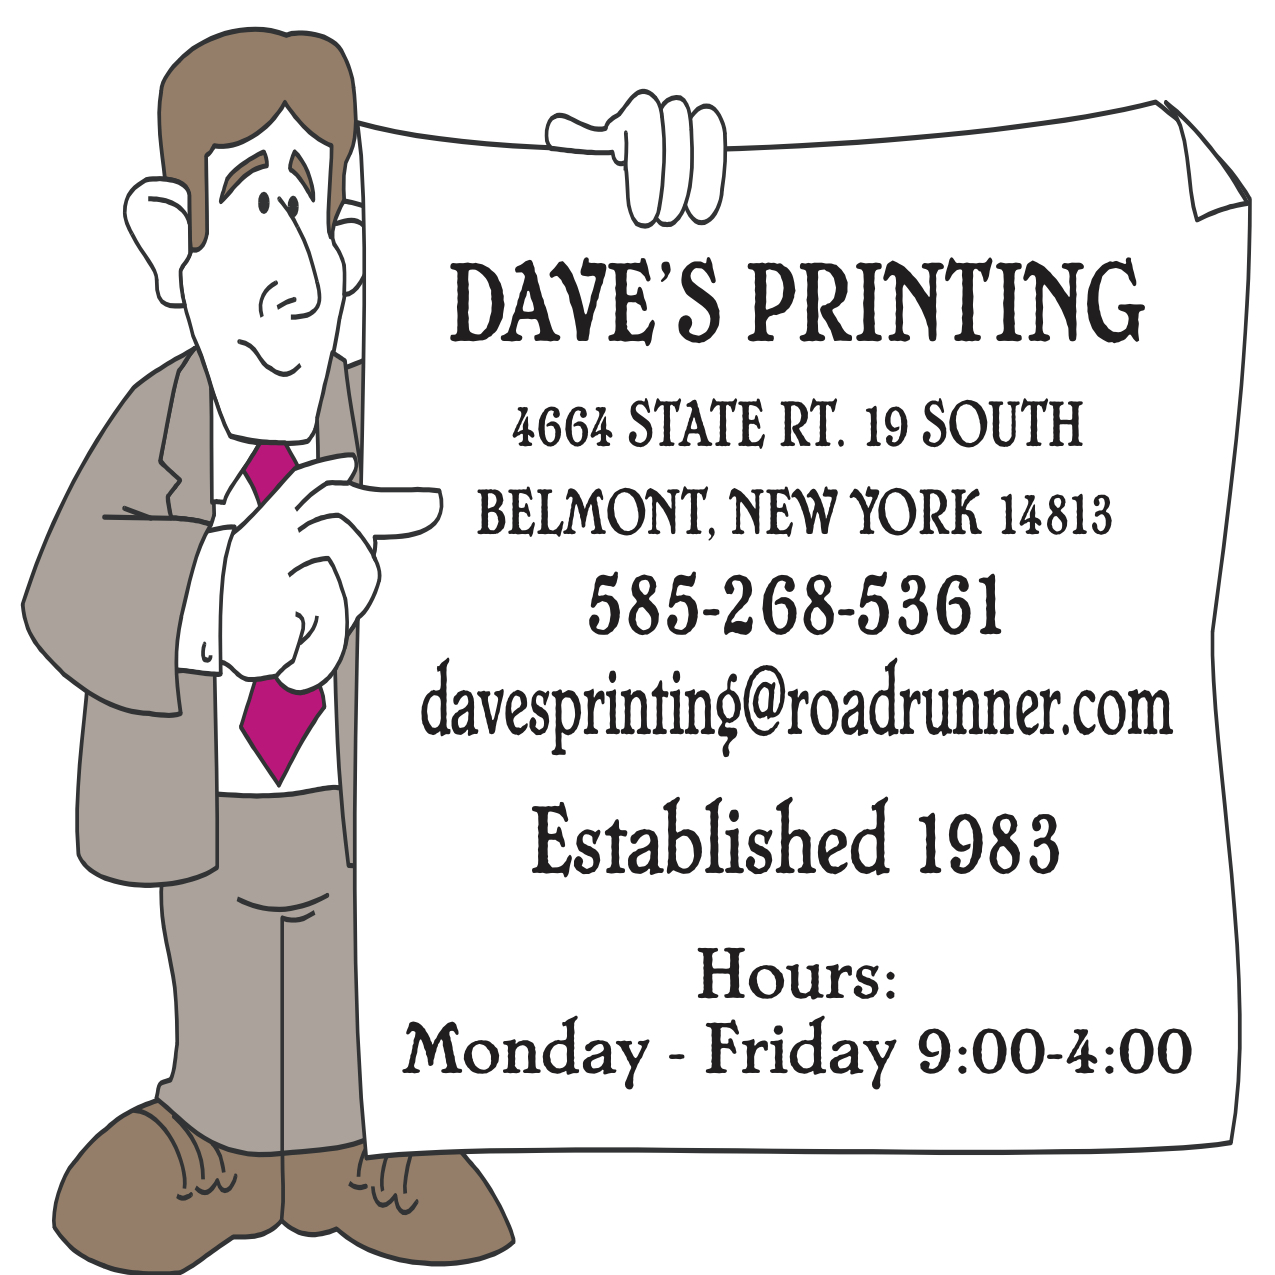 Dave's Printing